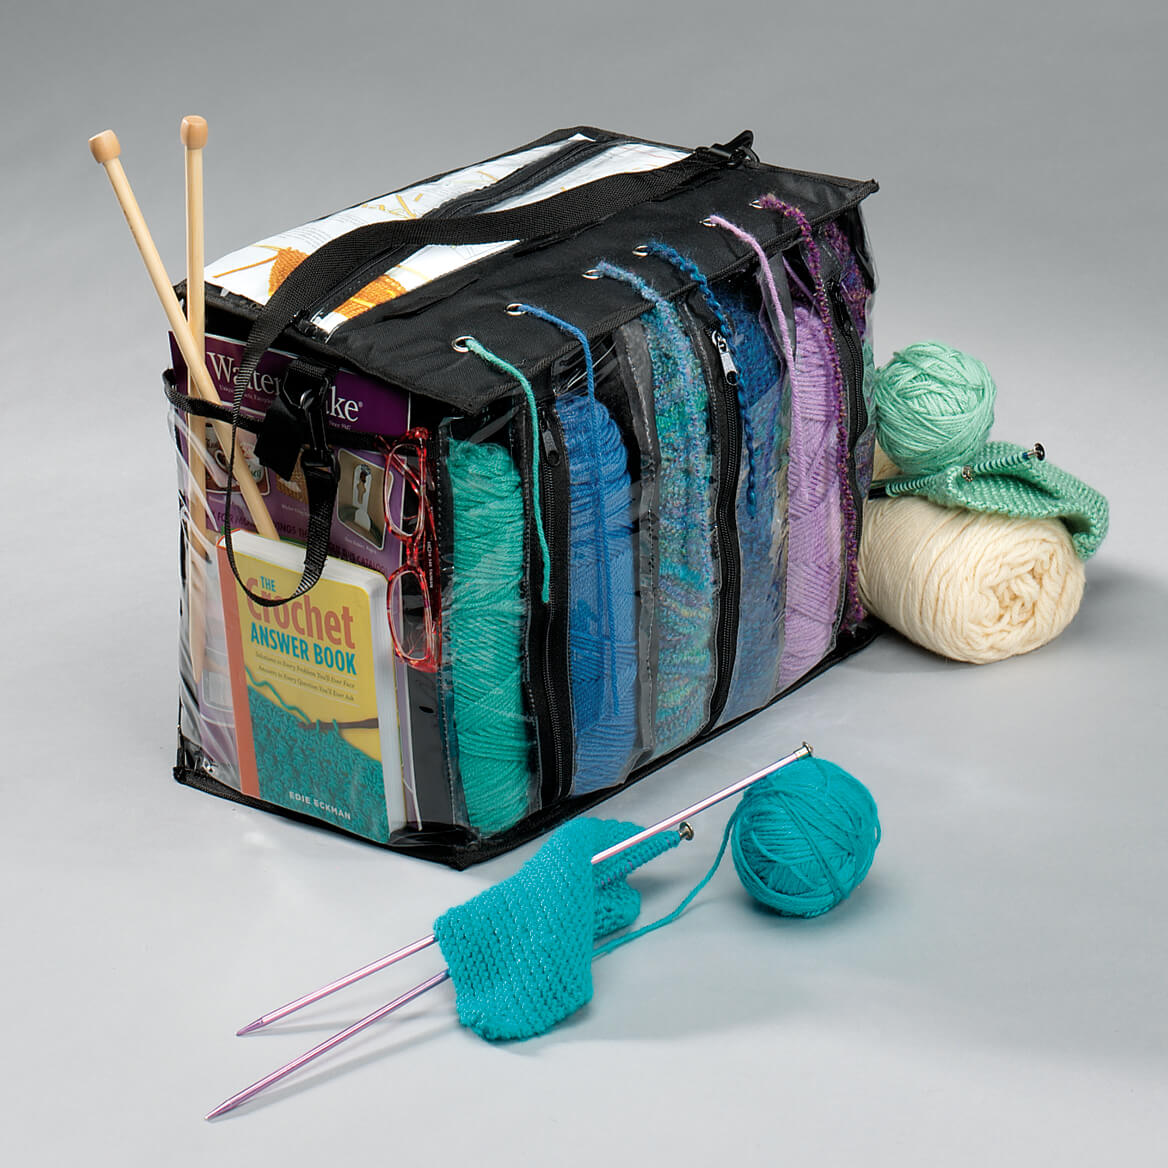 Select Quany Saved To Wishlist Save Add Cart Description Knitting Tote Bag